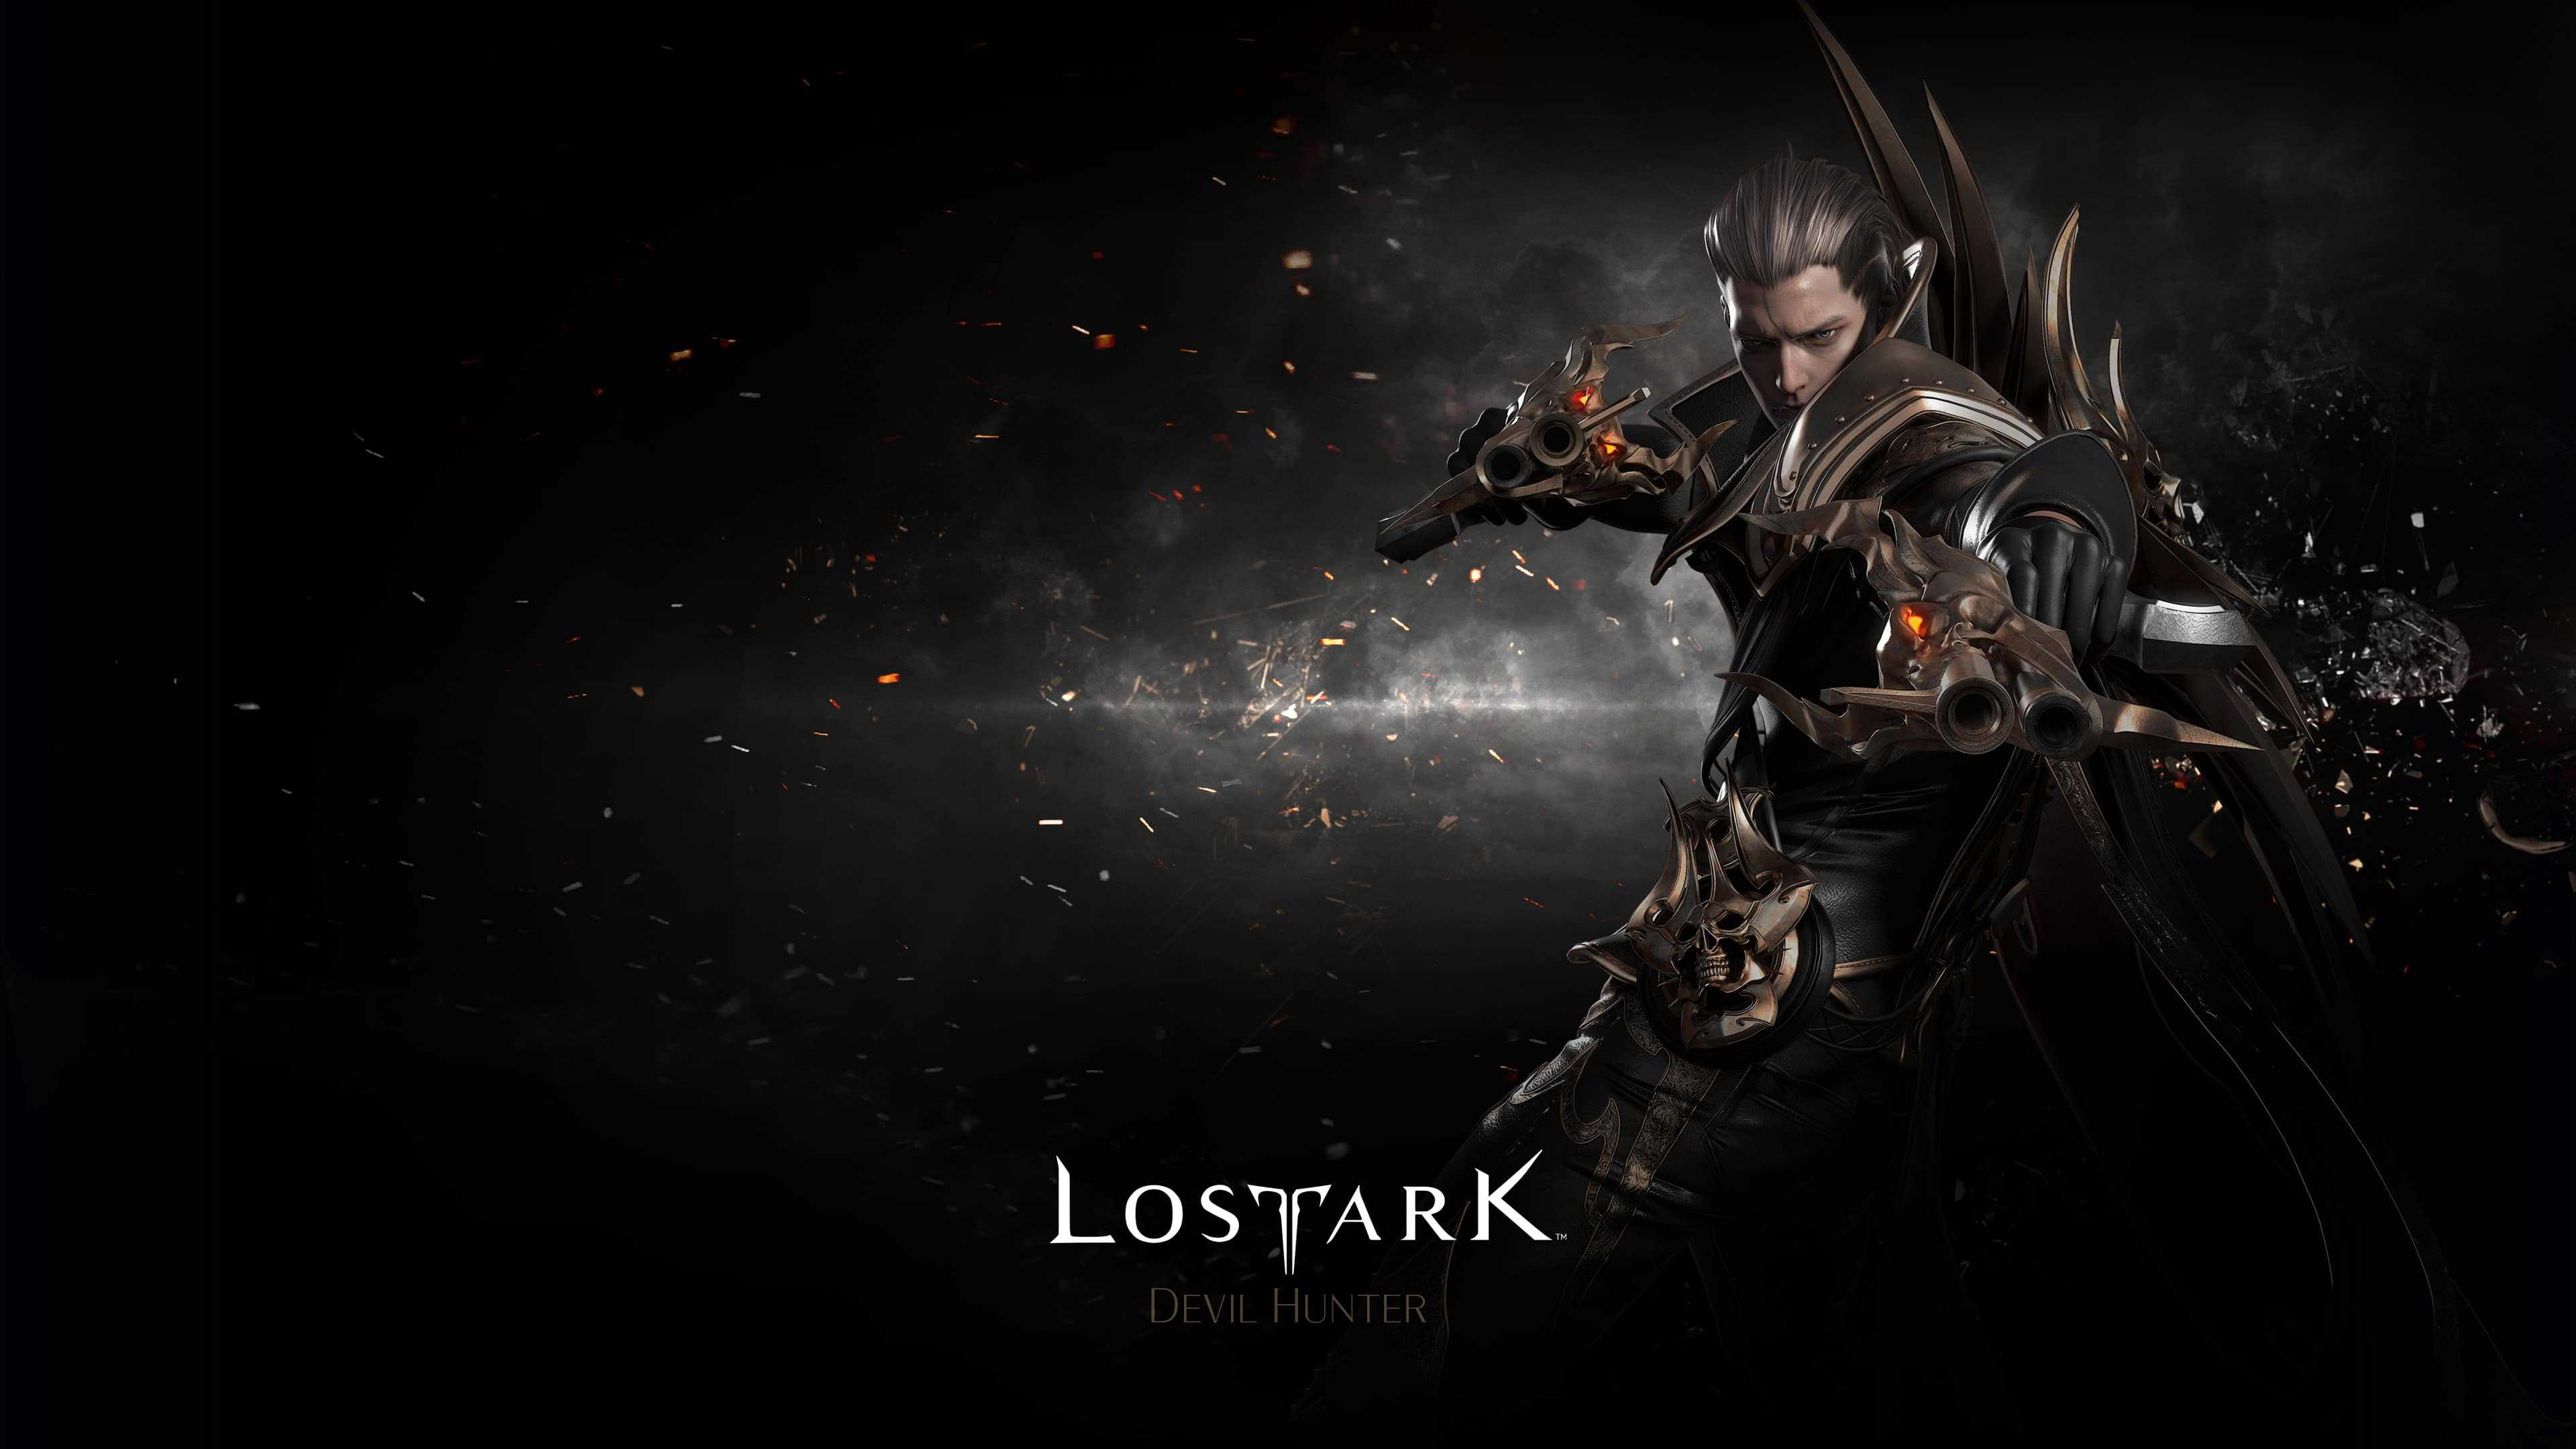 Lost Ark Devil Hunter Uhd 4k Wallpaper Pixelz